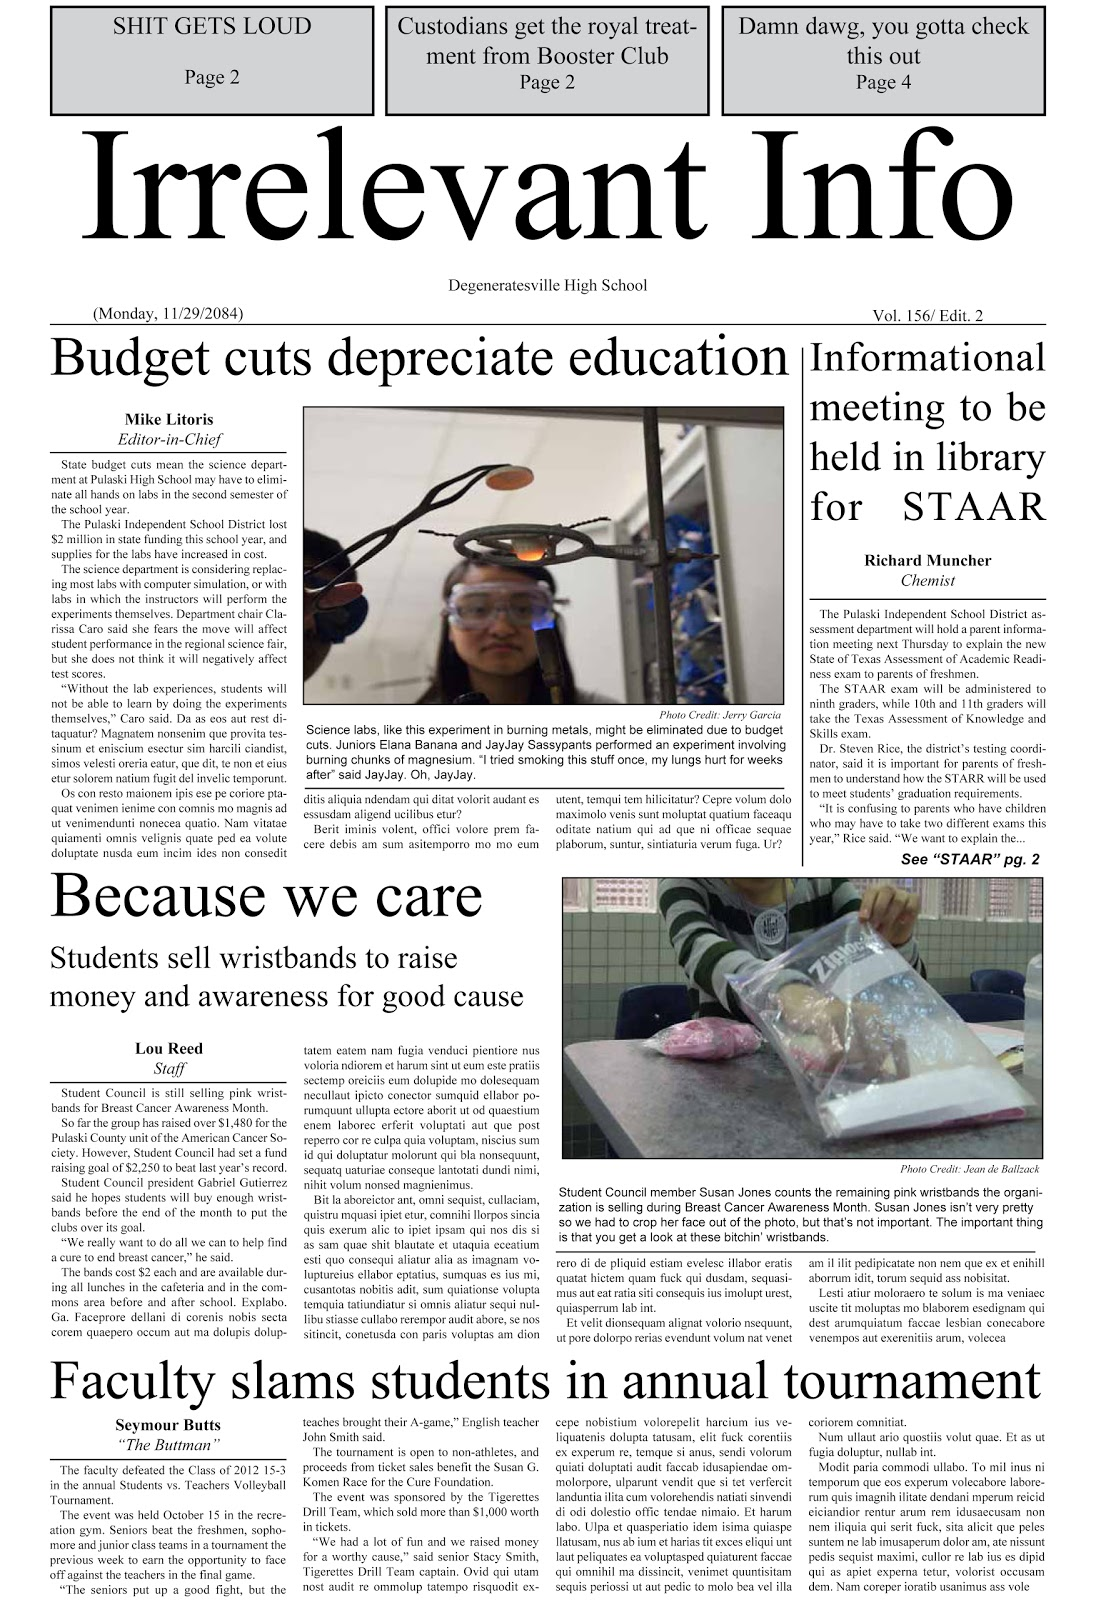 Sean: Newspaper front & inside page